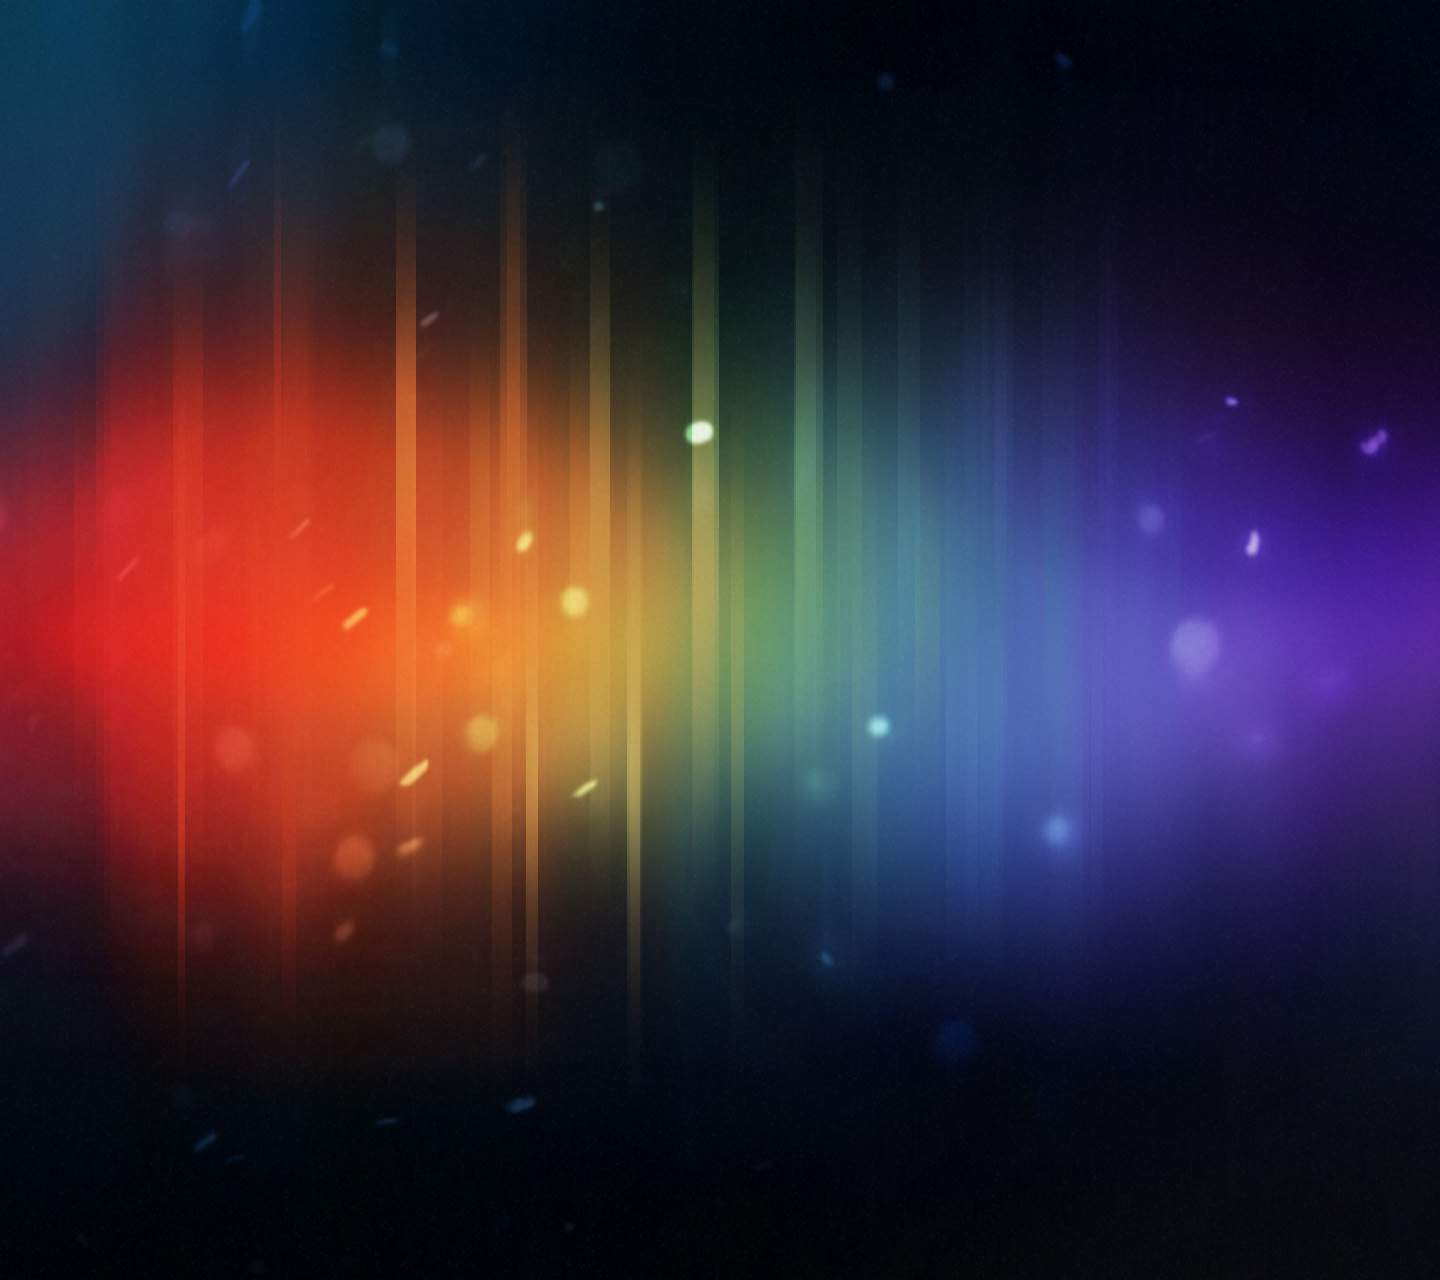 Android 4 Wallpaper